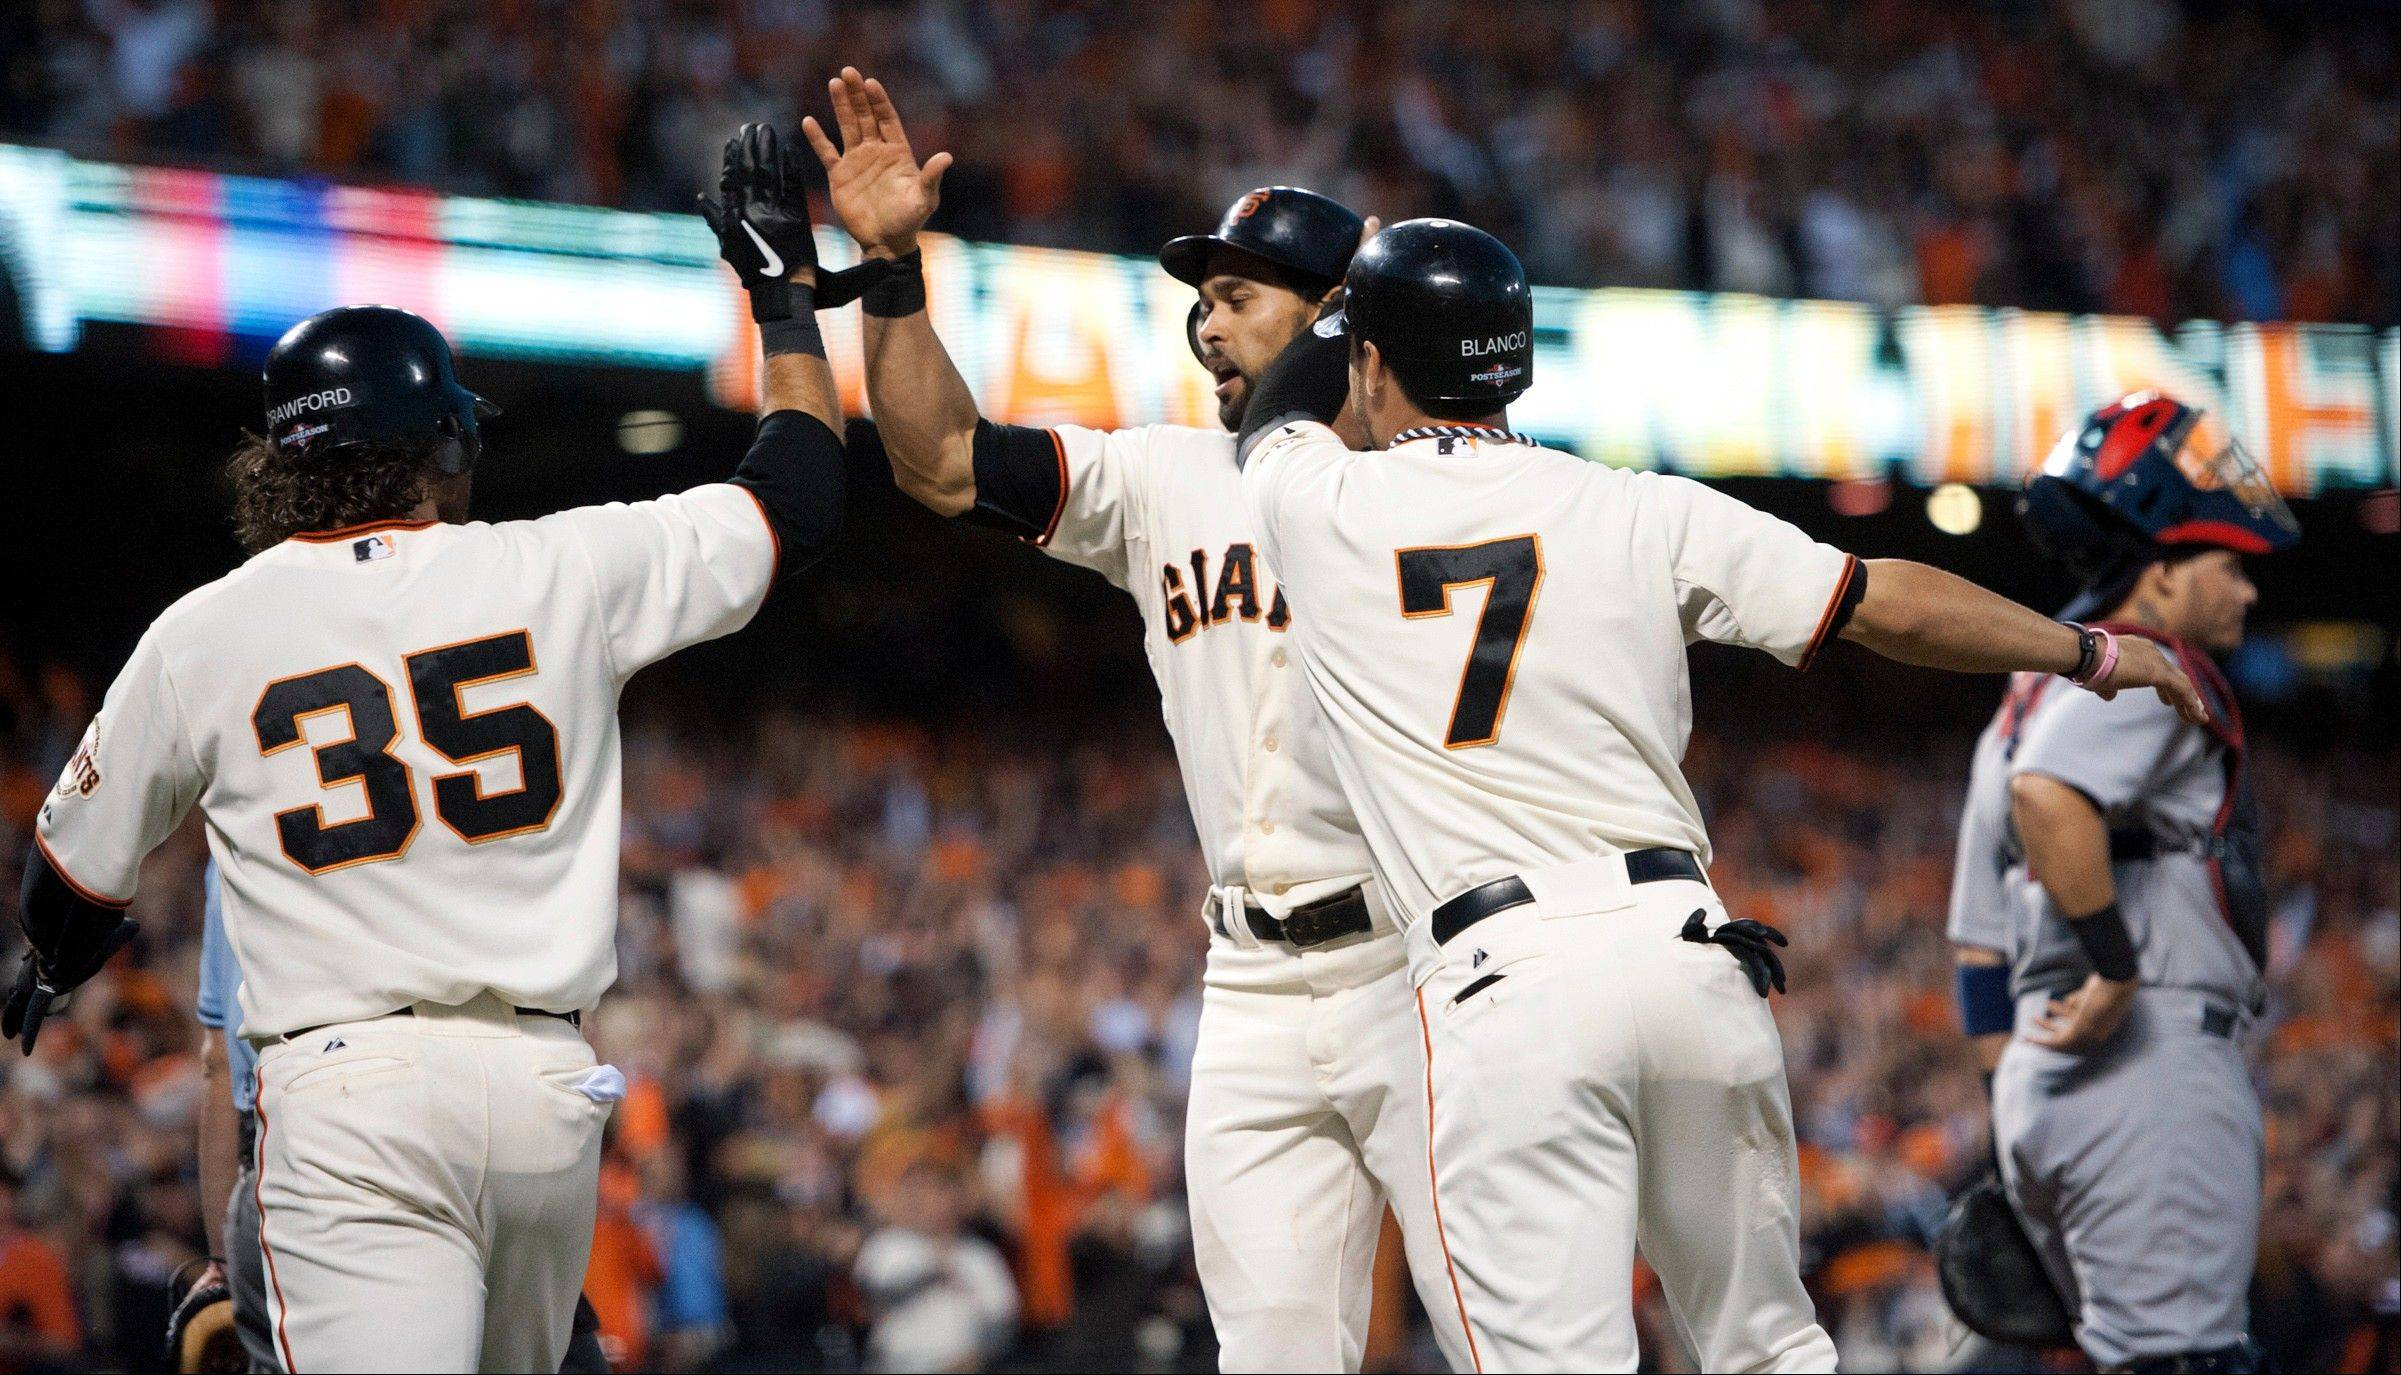 The San Francisco Giants' Brandon Crawford (35), Gregor Blanco (7) and Angel Pagan celebrate at the plate Monday after scoring on a fielding error by St. Louis Cardinals left fielder Matt Holliday